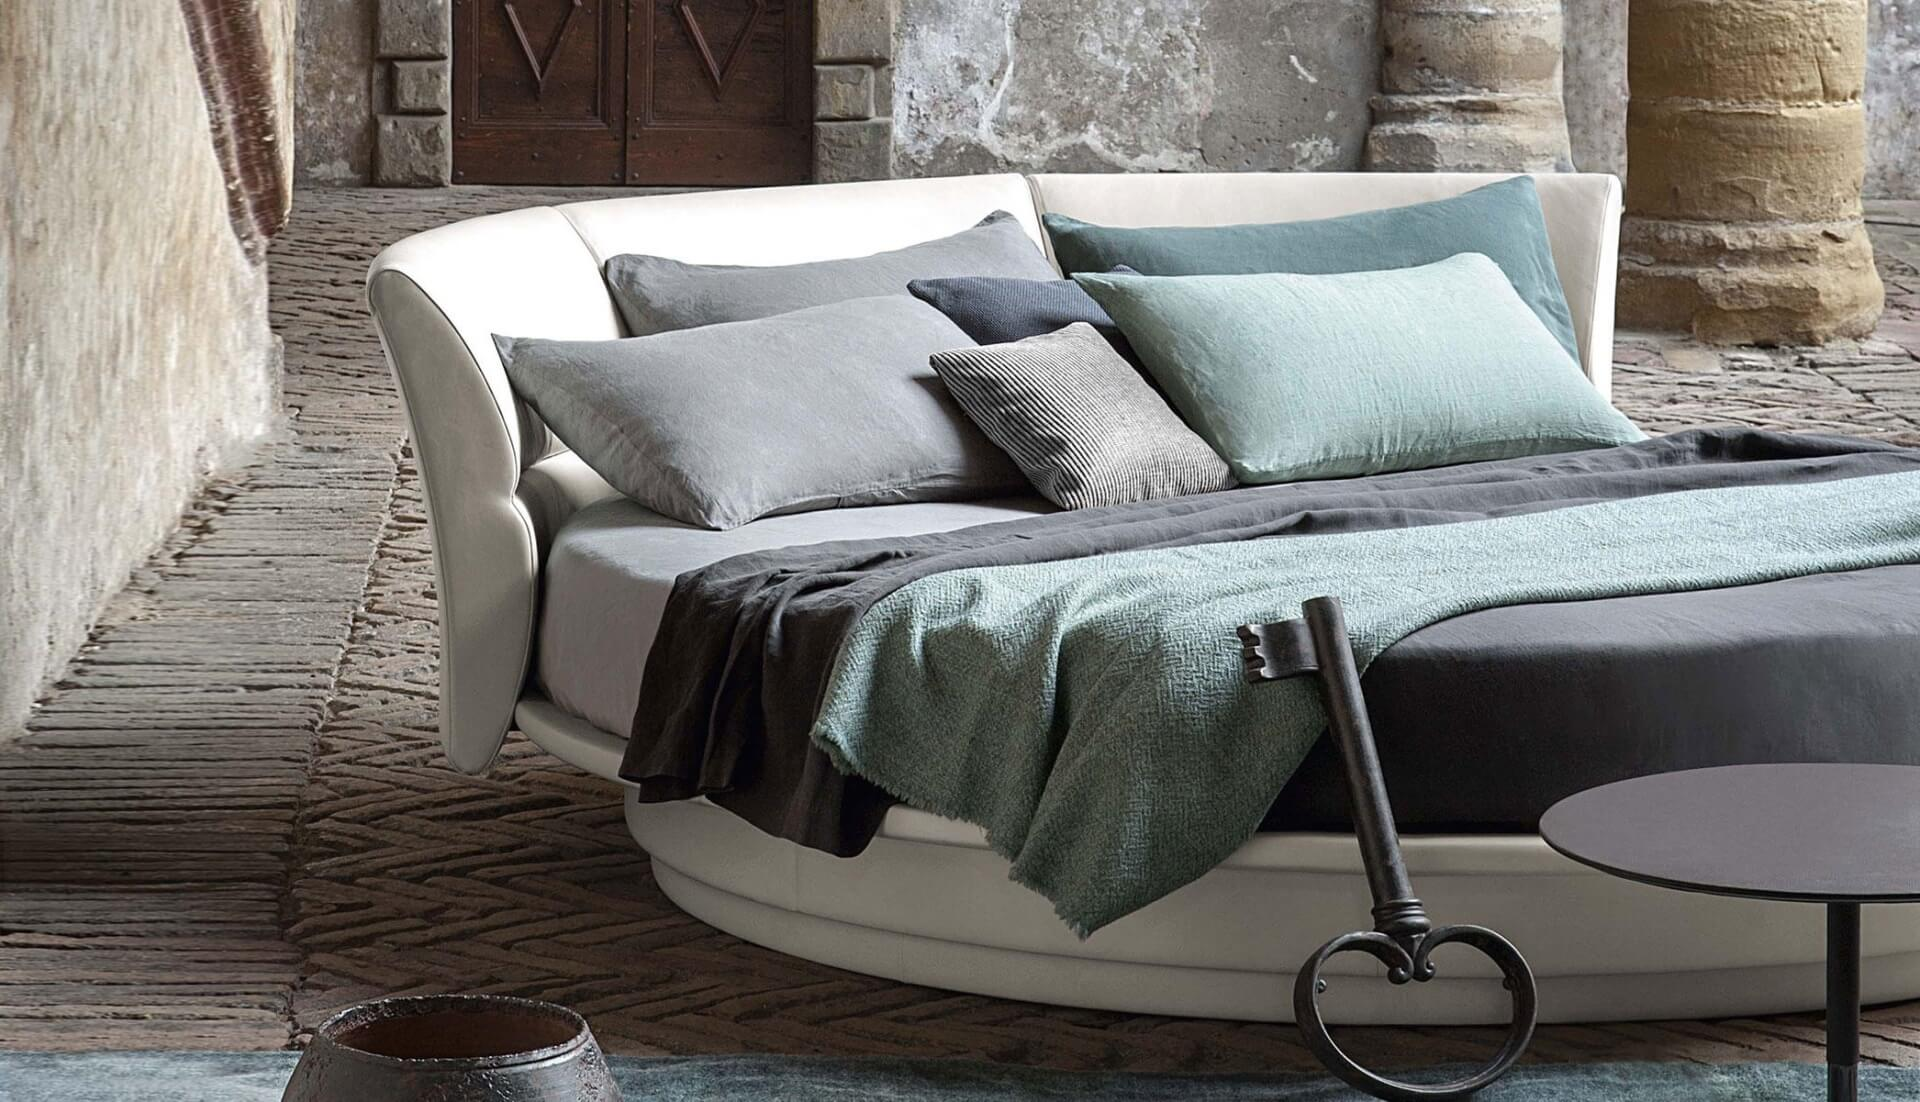 Poltrona Frau Lullaby Due Round Bed